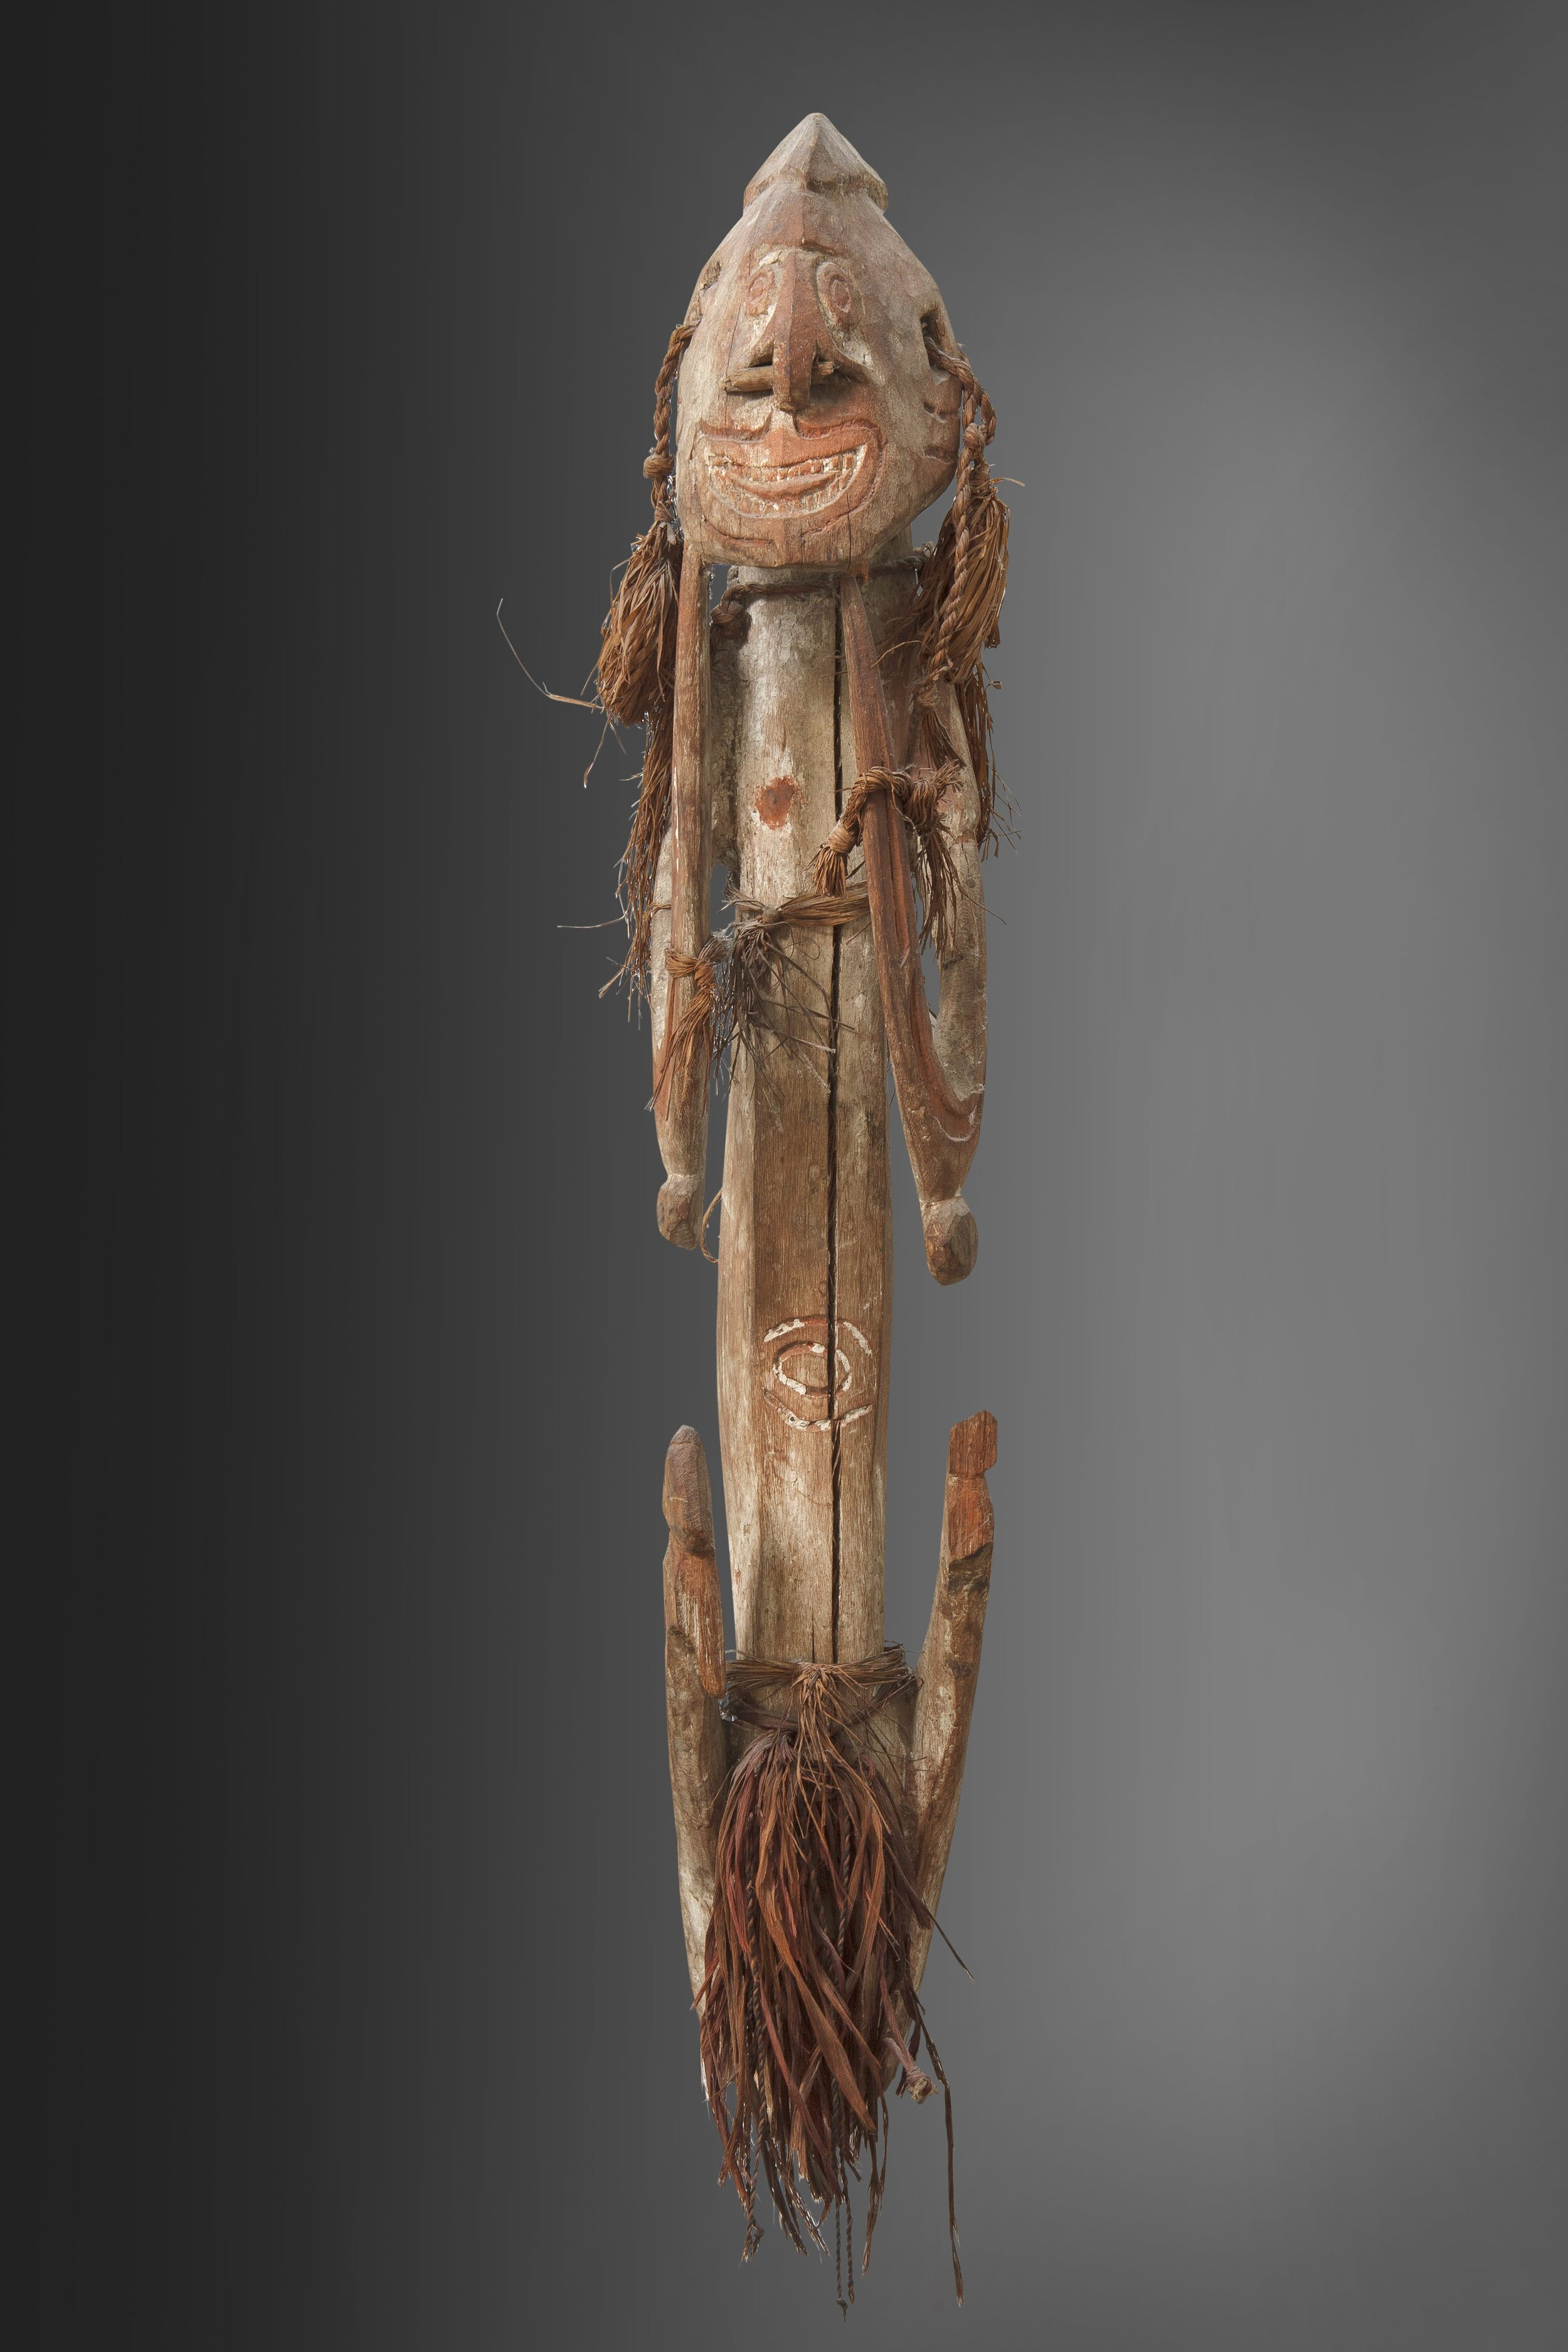 """Ancestor figure B, accompanied by a document typed by the collector indicating: """"Female Figure. Wide open mouth with tongue. Hands and legs bent. Missing legs below the knee. Hands touching the lower jaw. H. 70 cm. Hardwood and heavy, slightly colored. Originally entirely covered with white chalk. Incised lines painted red. Purchased at the MSC missionary house in 1950. Collected by Father Viegen ... Noordwest River. See P. Viegen in the  Annals,  1912–1913."""" Private collection. Photo: Jan van Esch."""